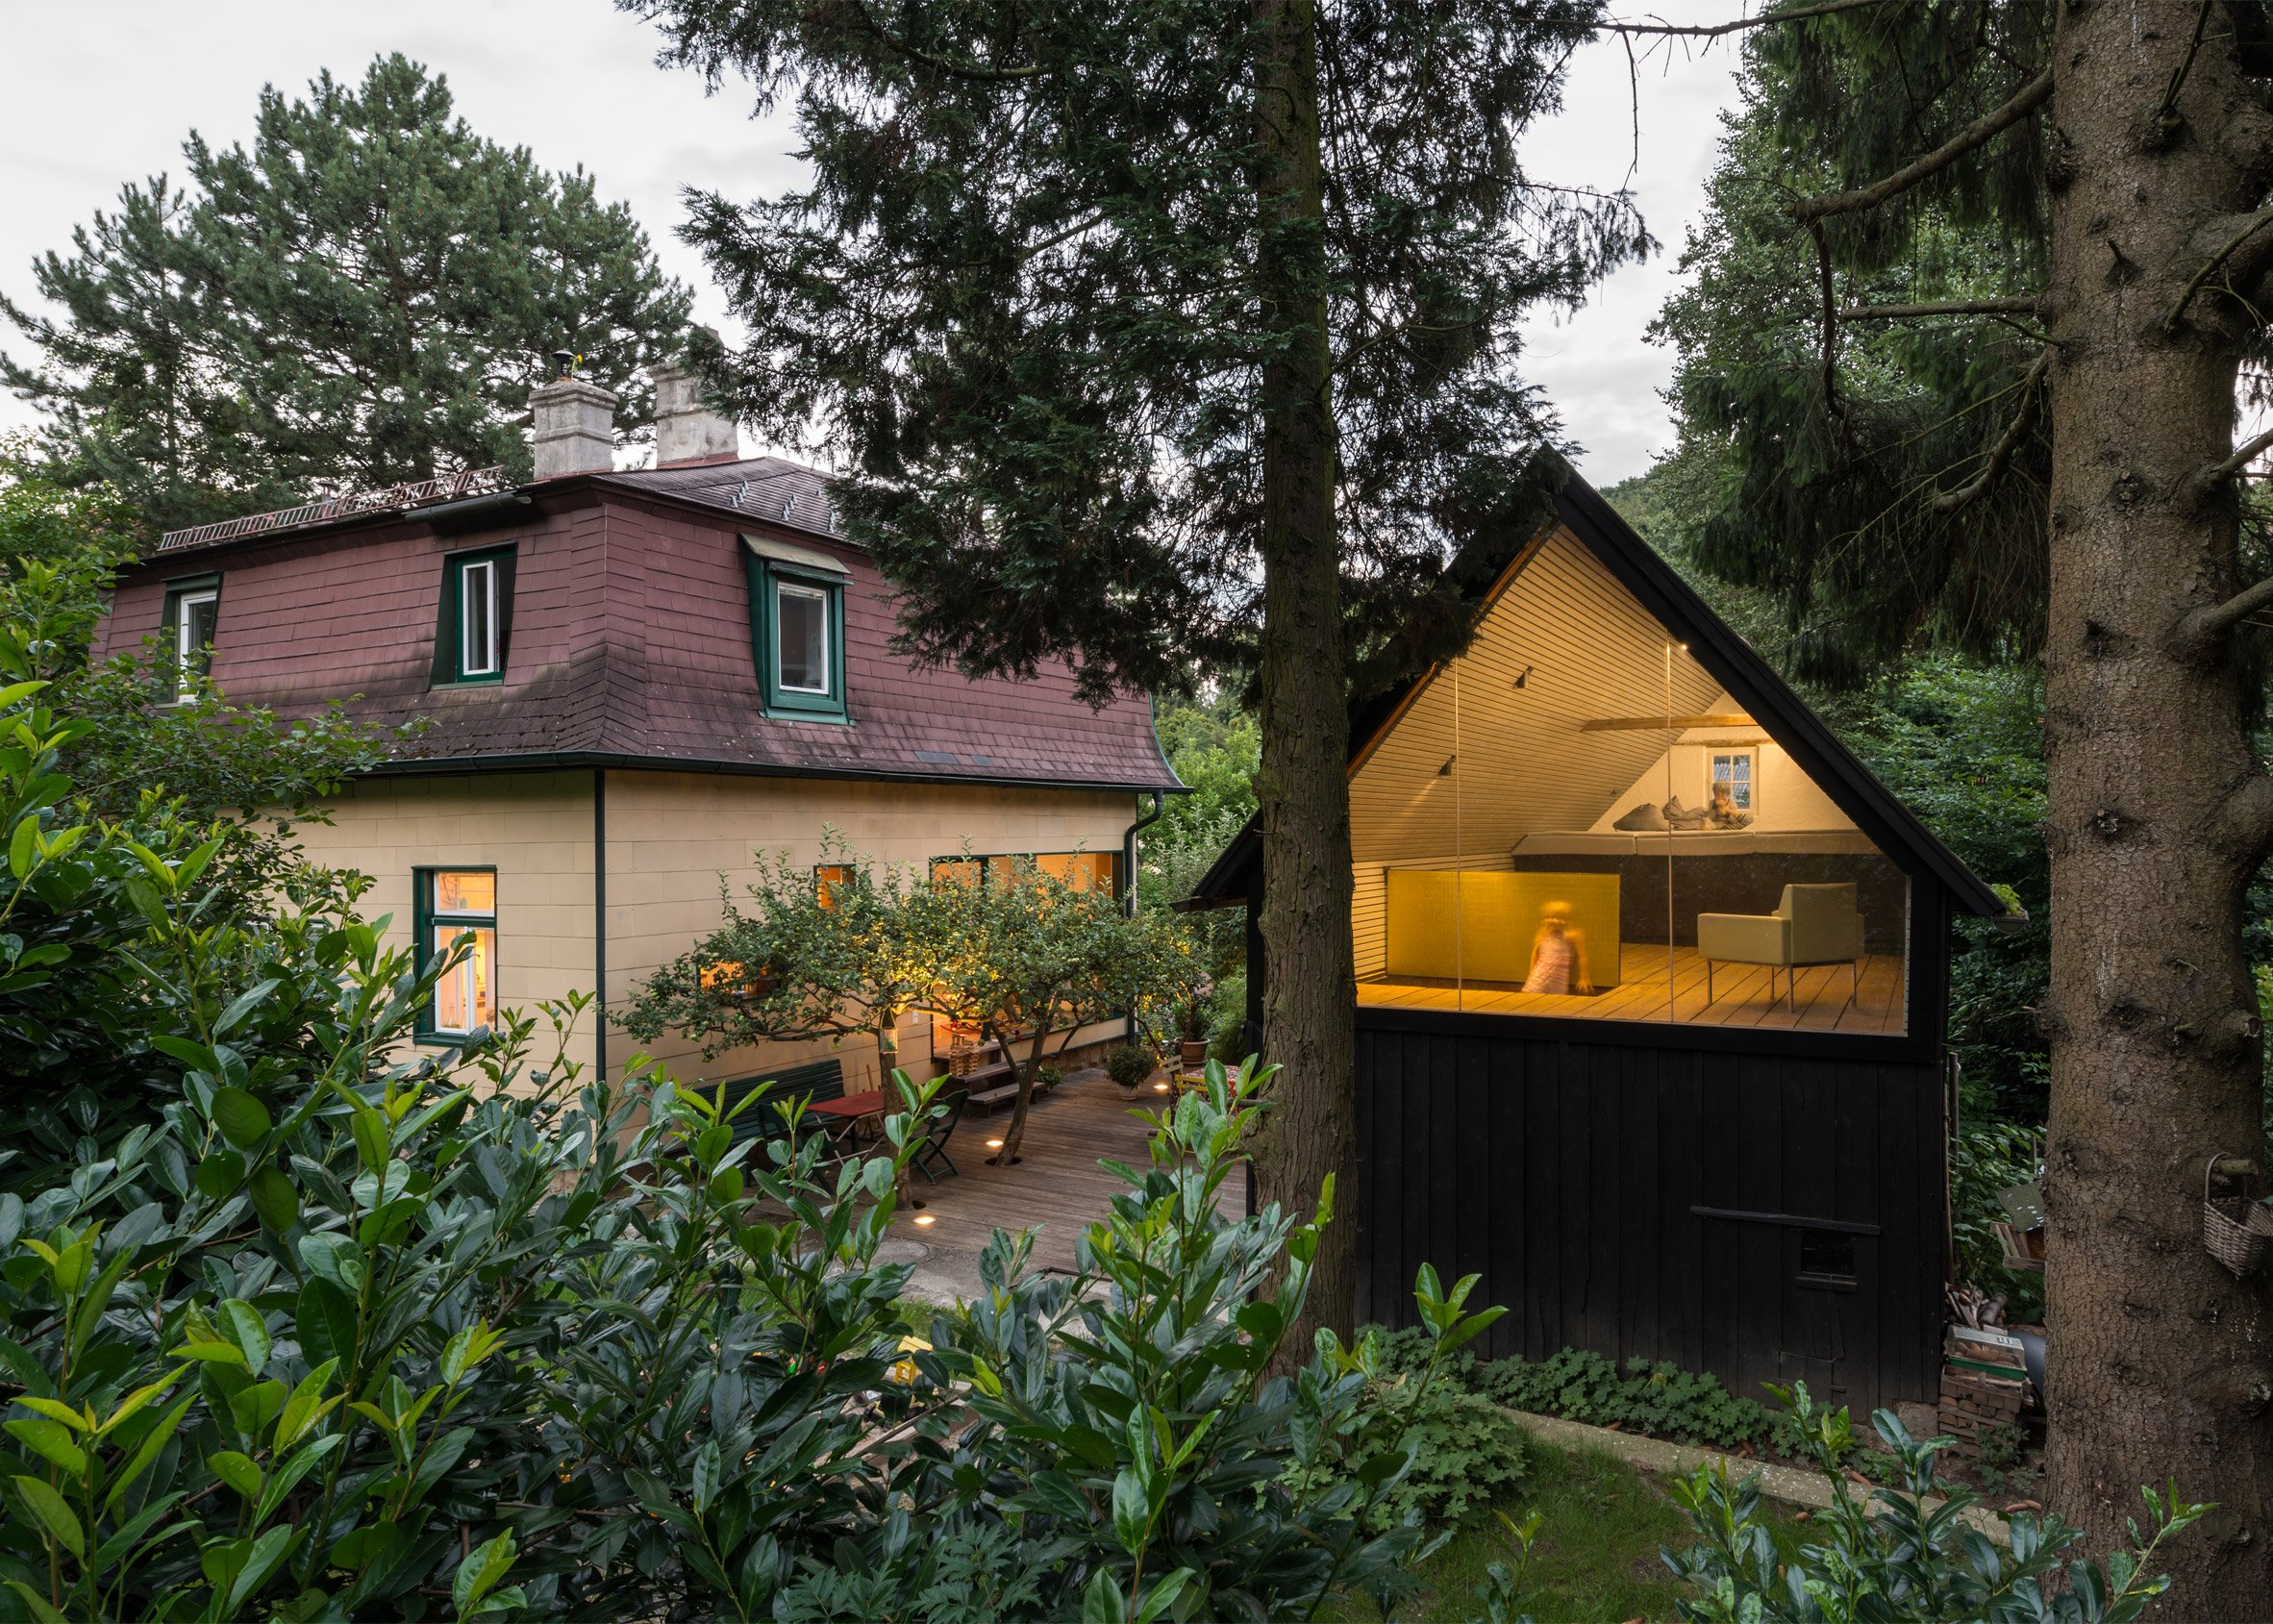 The Enchanted Shed by Sue Architekten